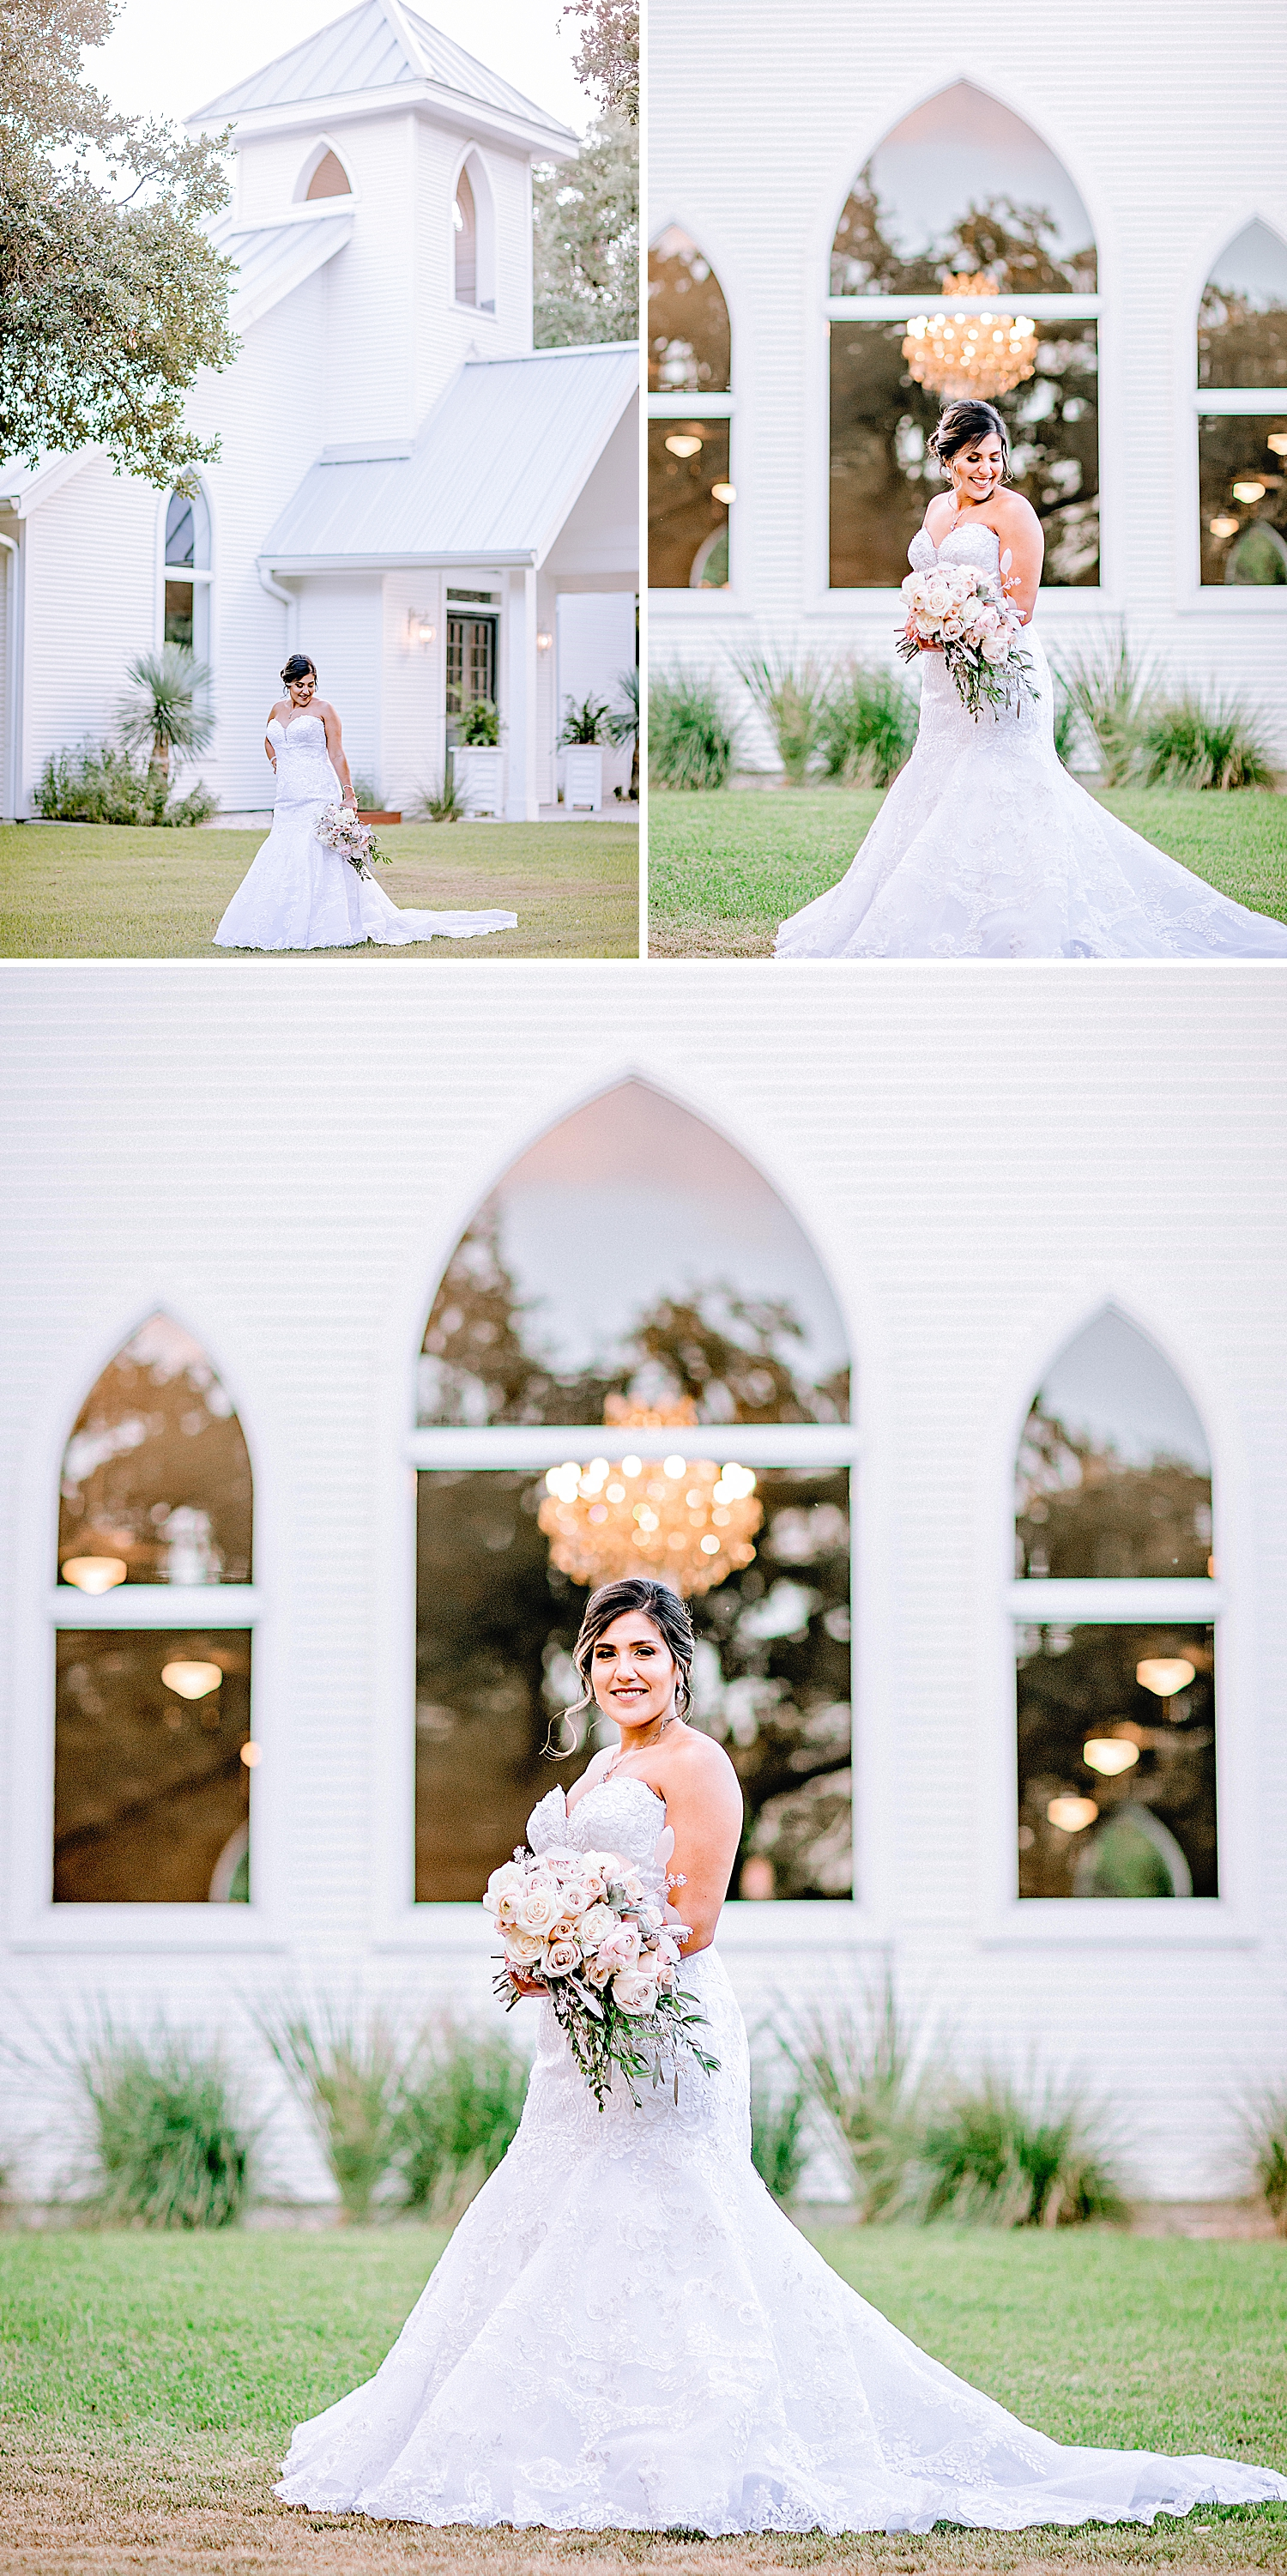 Carly-Barton-Photography-Bridal-Photos-Chadelier-of-Gruene-New-Braunfels-Wedding-Photographer_0018.jpg